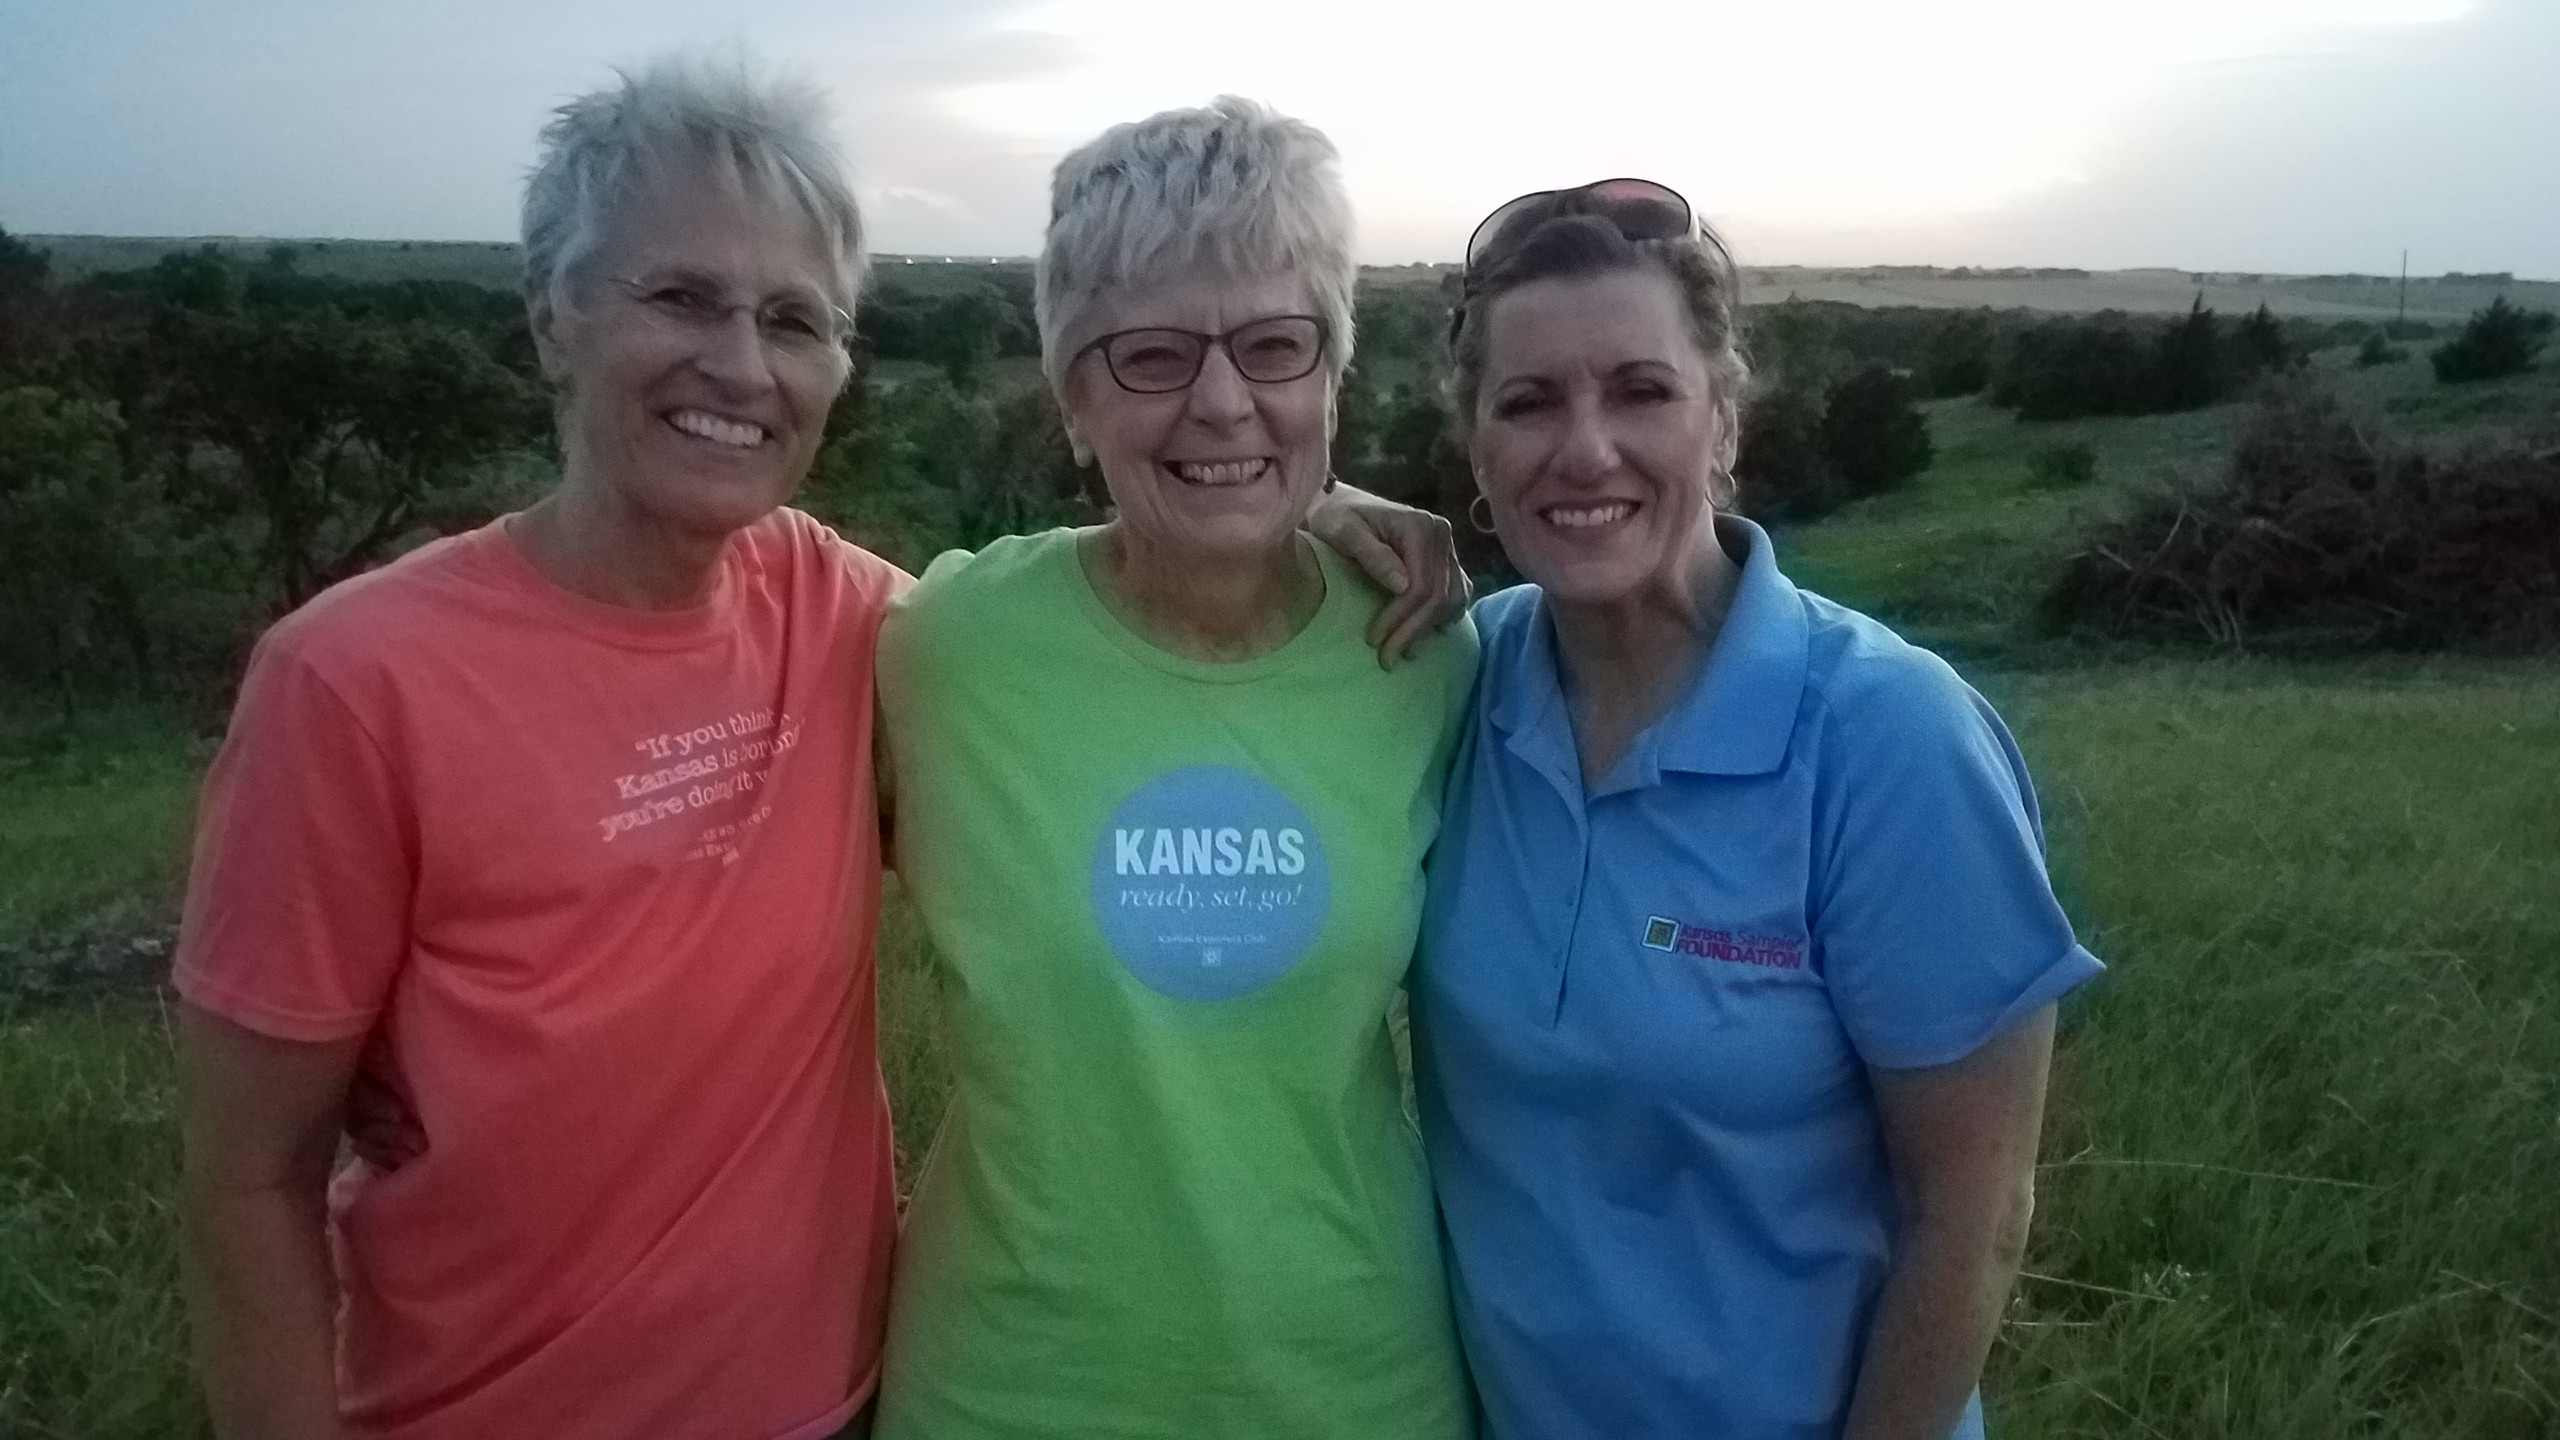 Susie Haver, Cloud County Tourism Director, hosted the viewing at her home. The evening's guests included Marci Penner and WenDee Rowe with the Kansas Sampler Foundation.